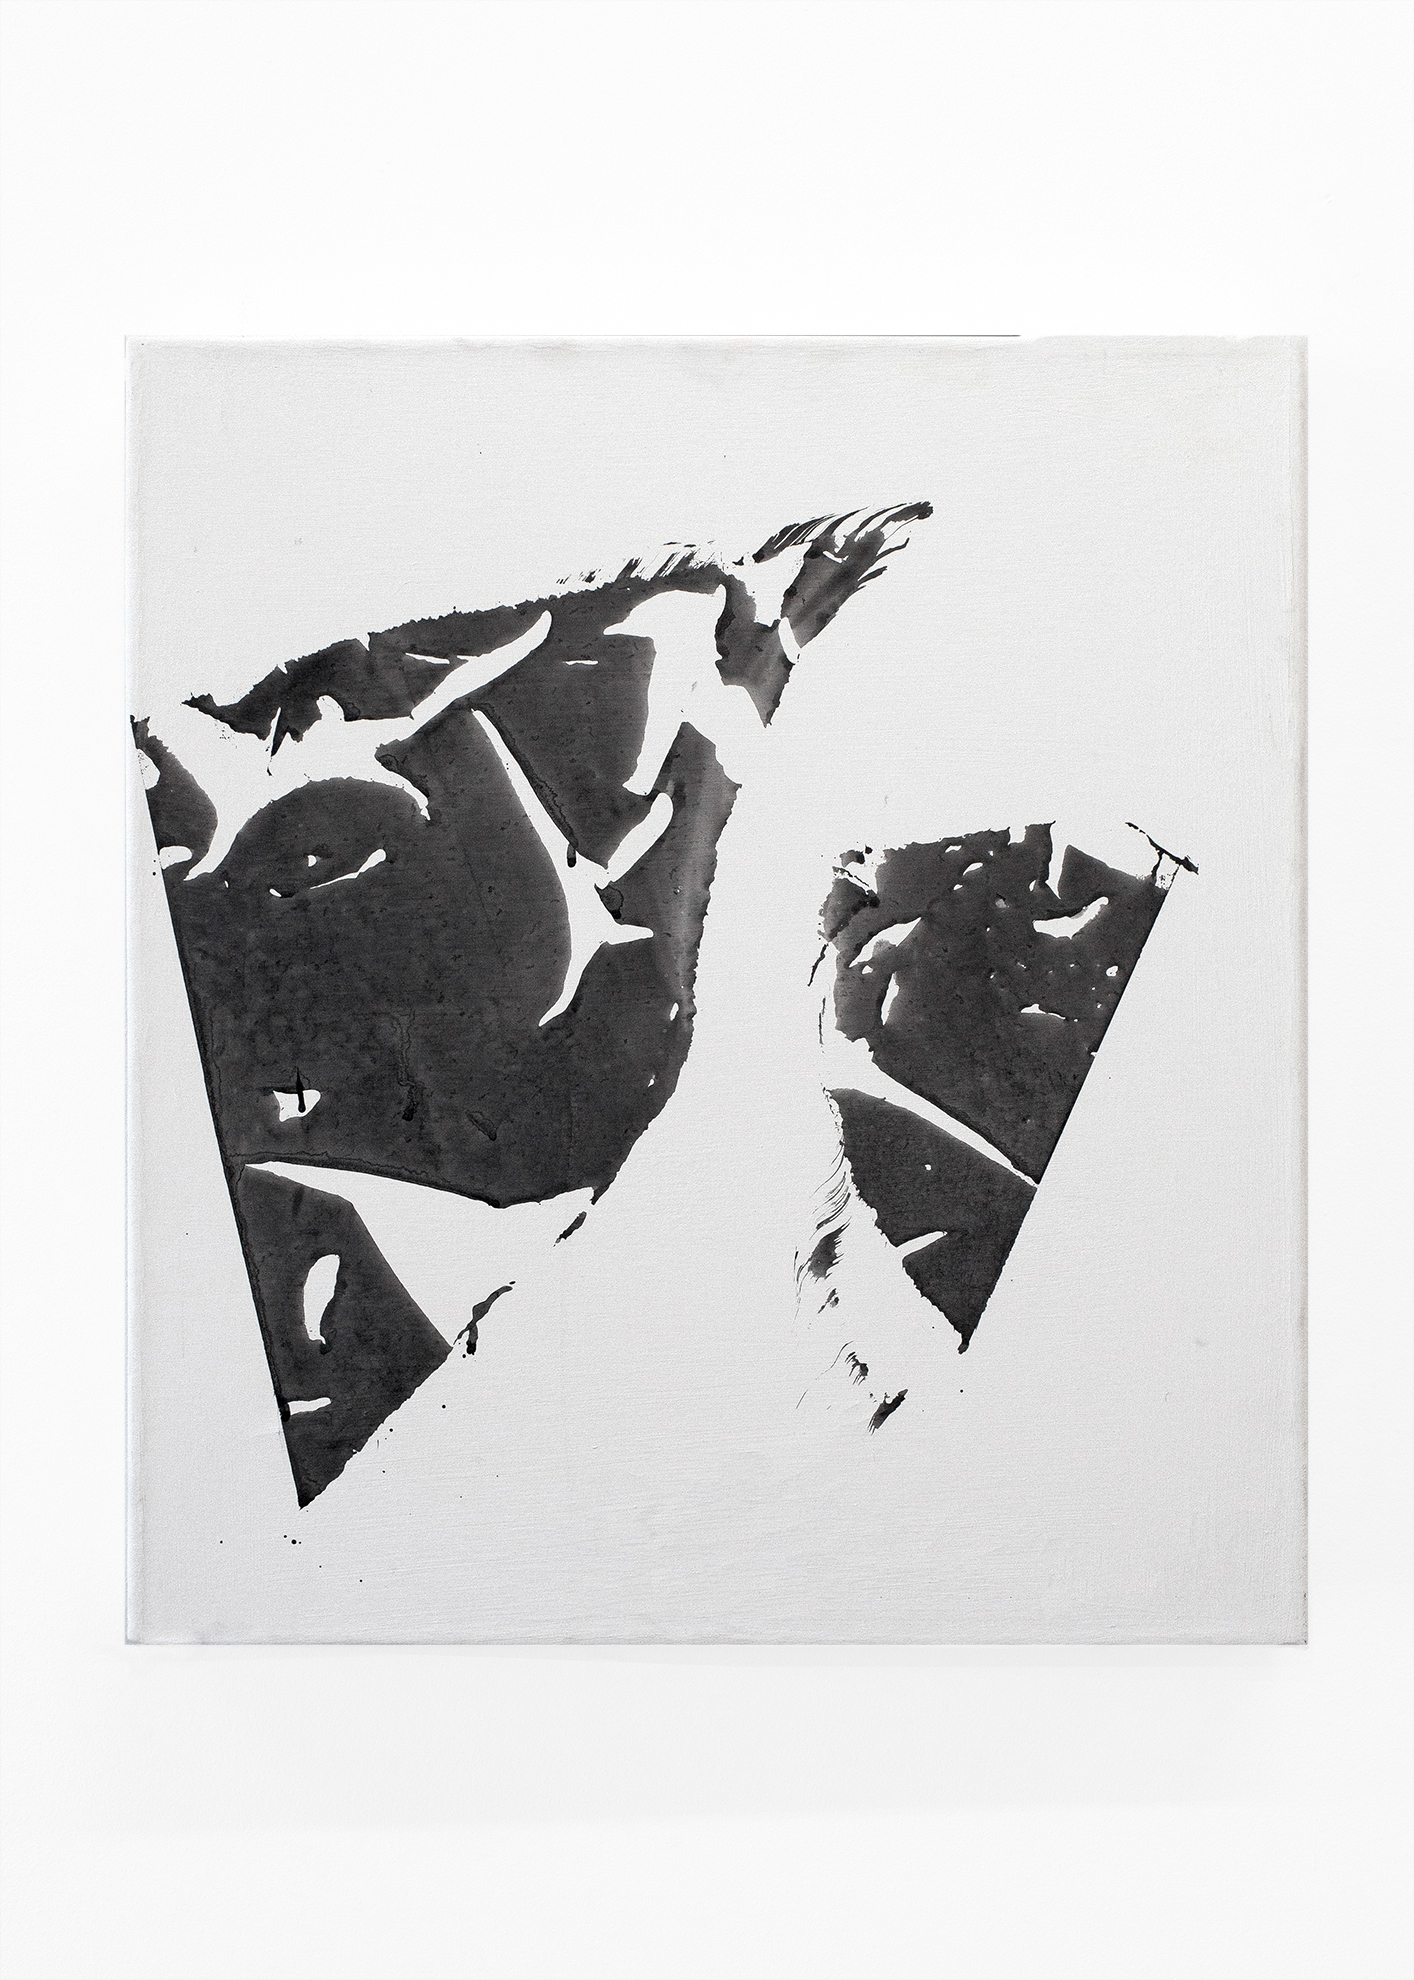 Fragments 2018  Ink + Gesso on Canvas 20 x 18 in.